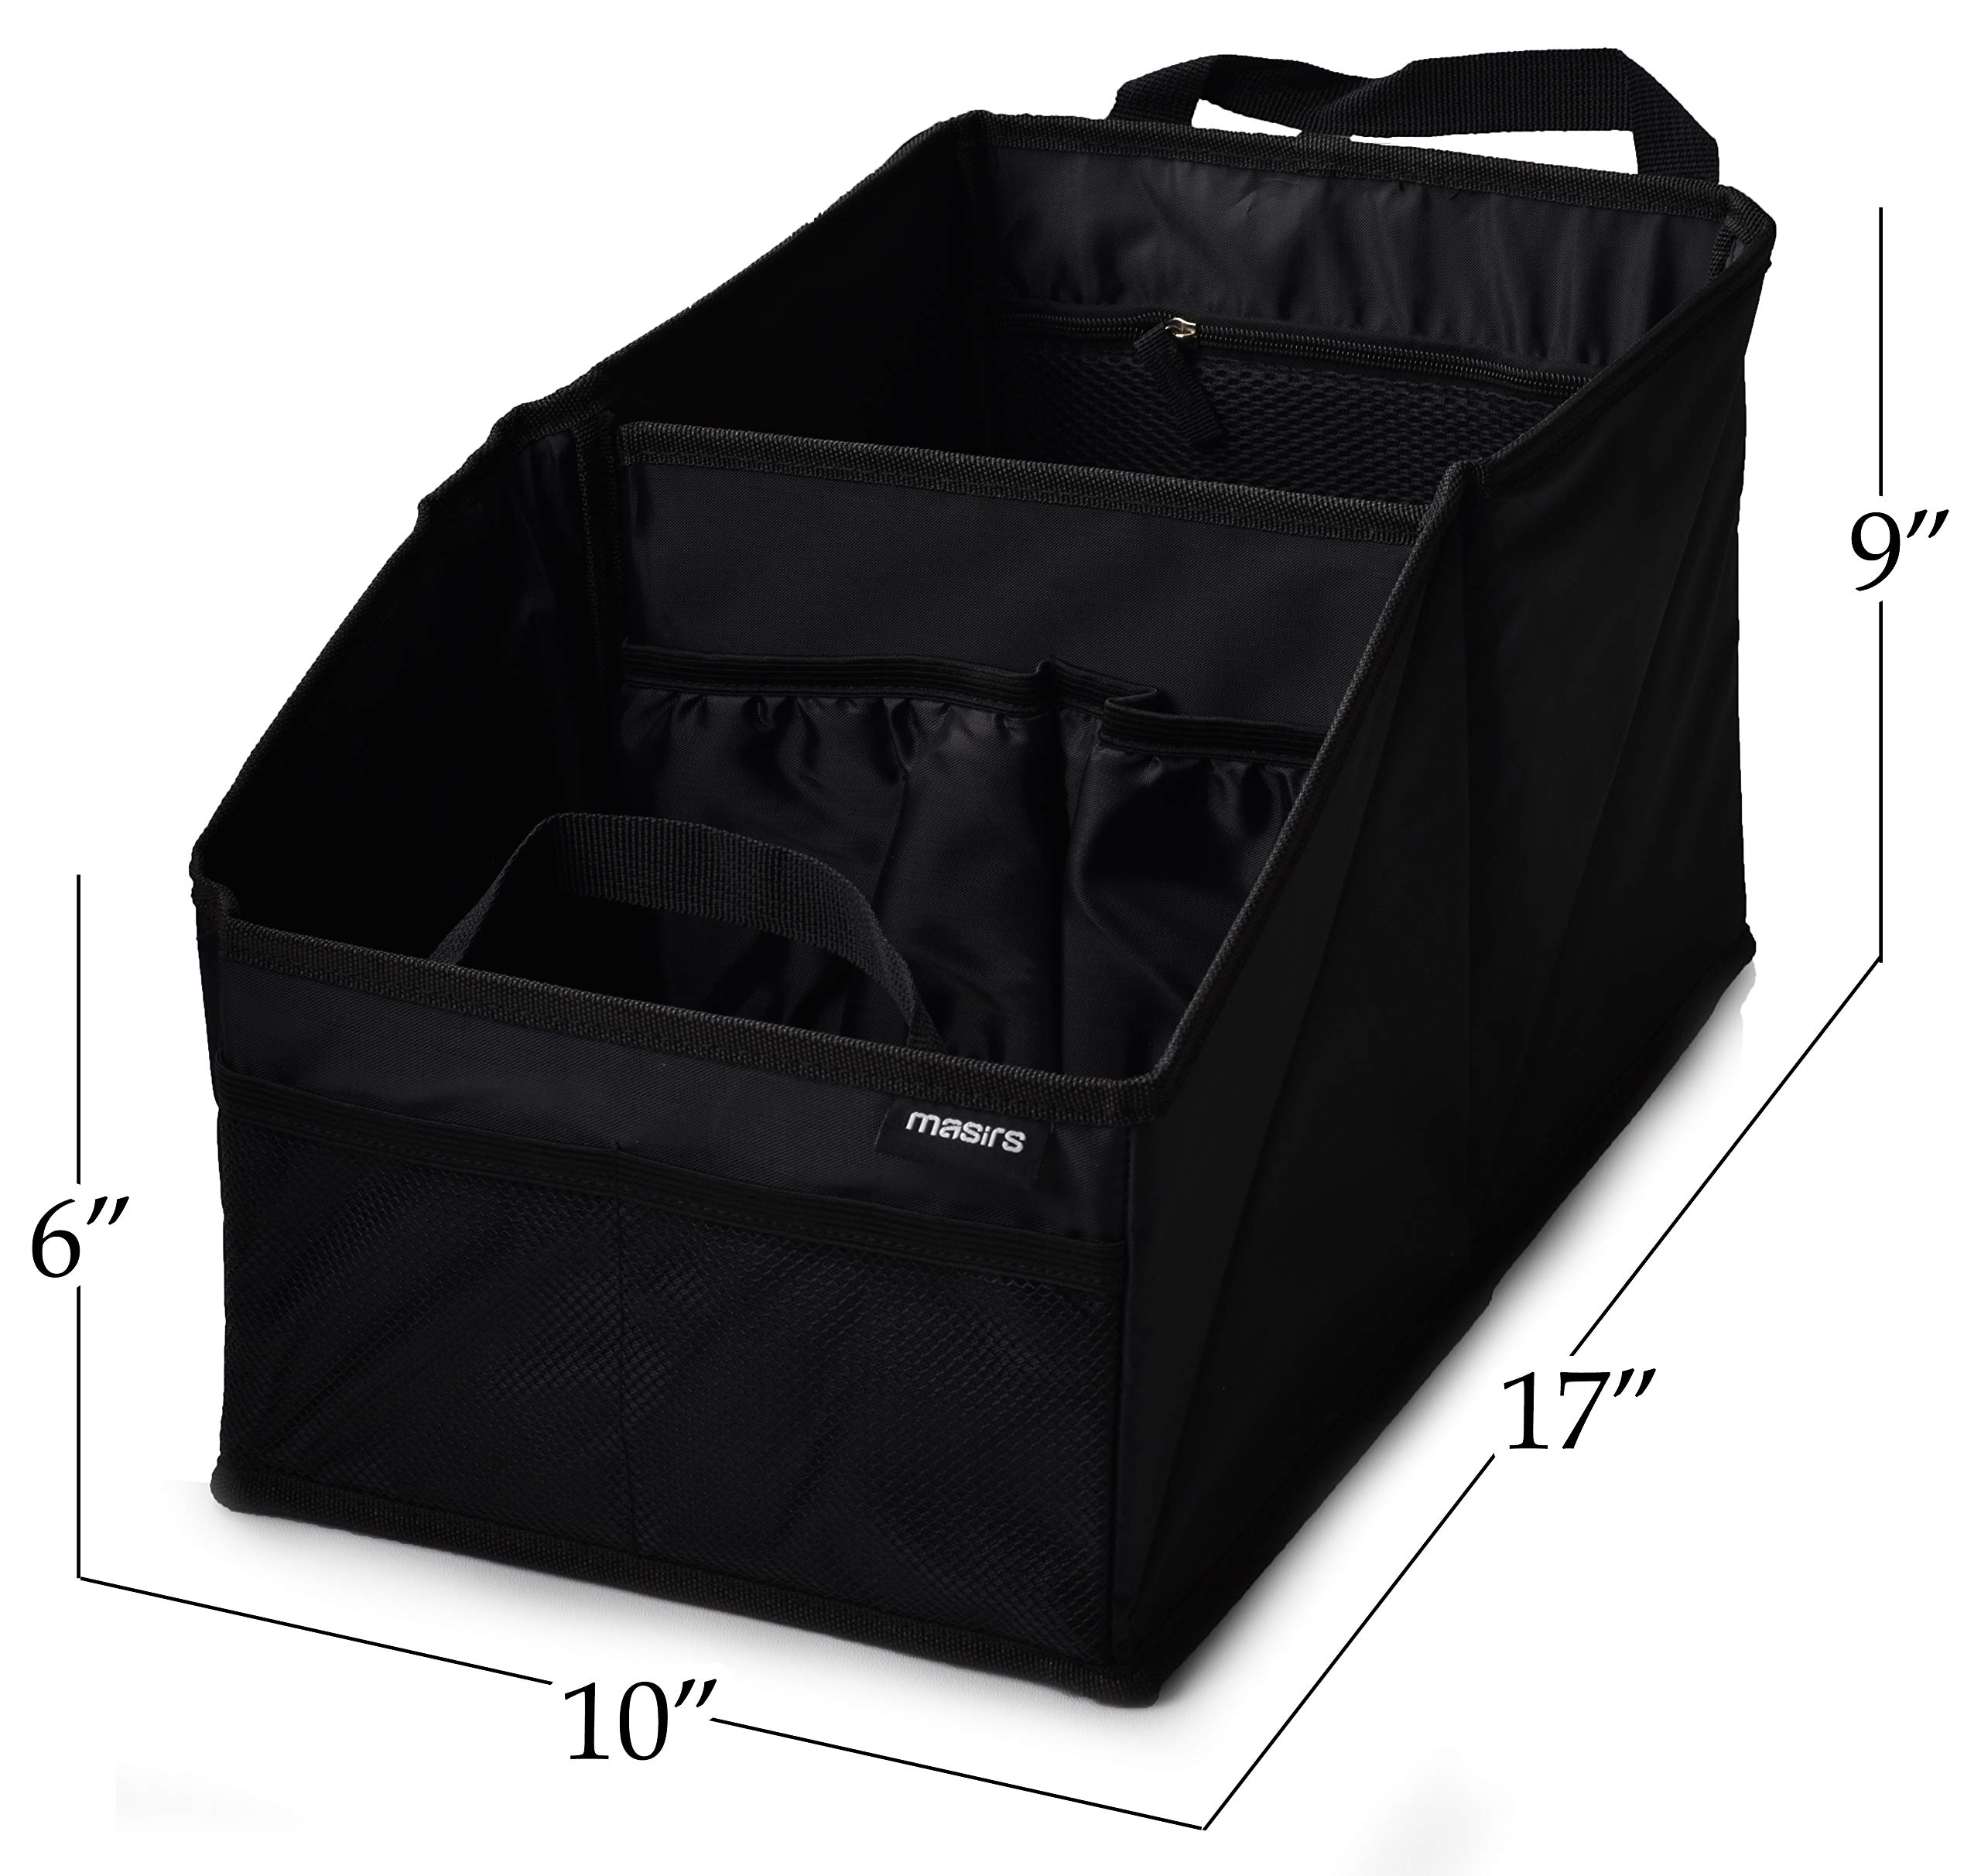 Foldable Front Back Seat Organizer with Tissue Box /& Cup Holder,Heavy Duty Storage Container Kids Toys Books Snacks Cargo,Black Elantrip Car Seat Organizer